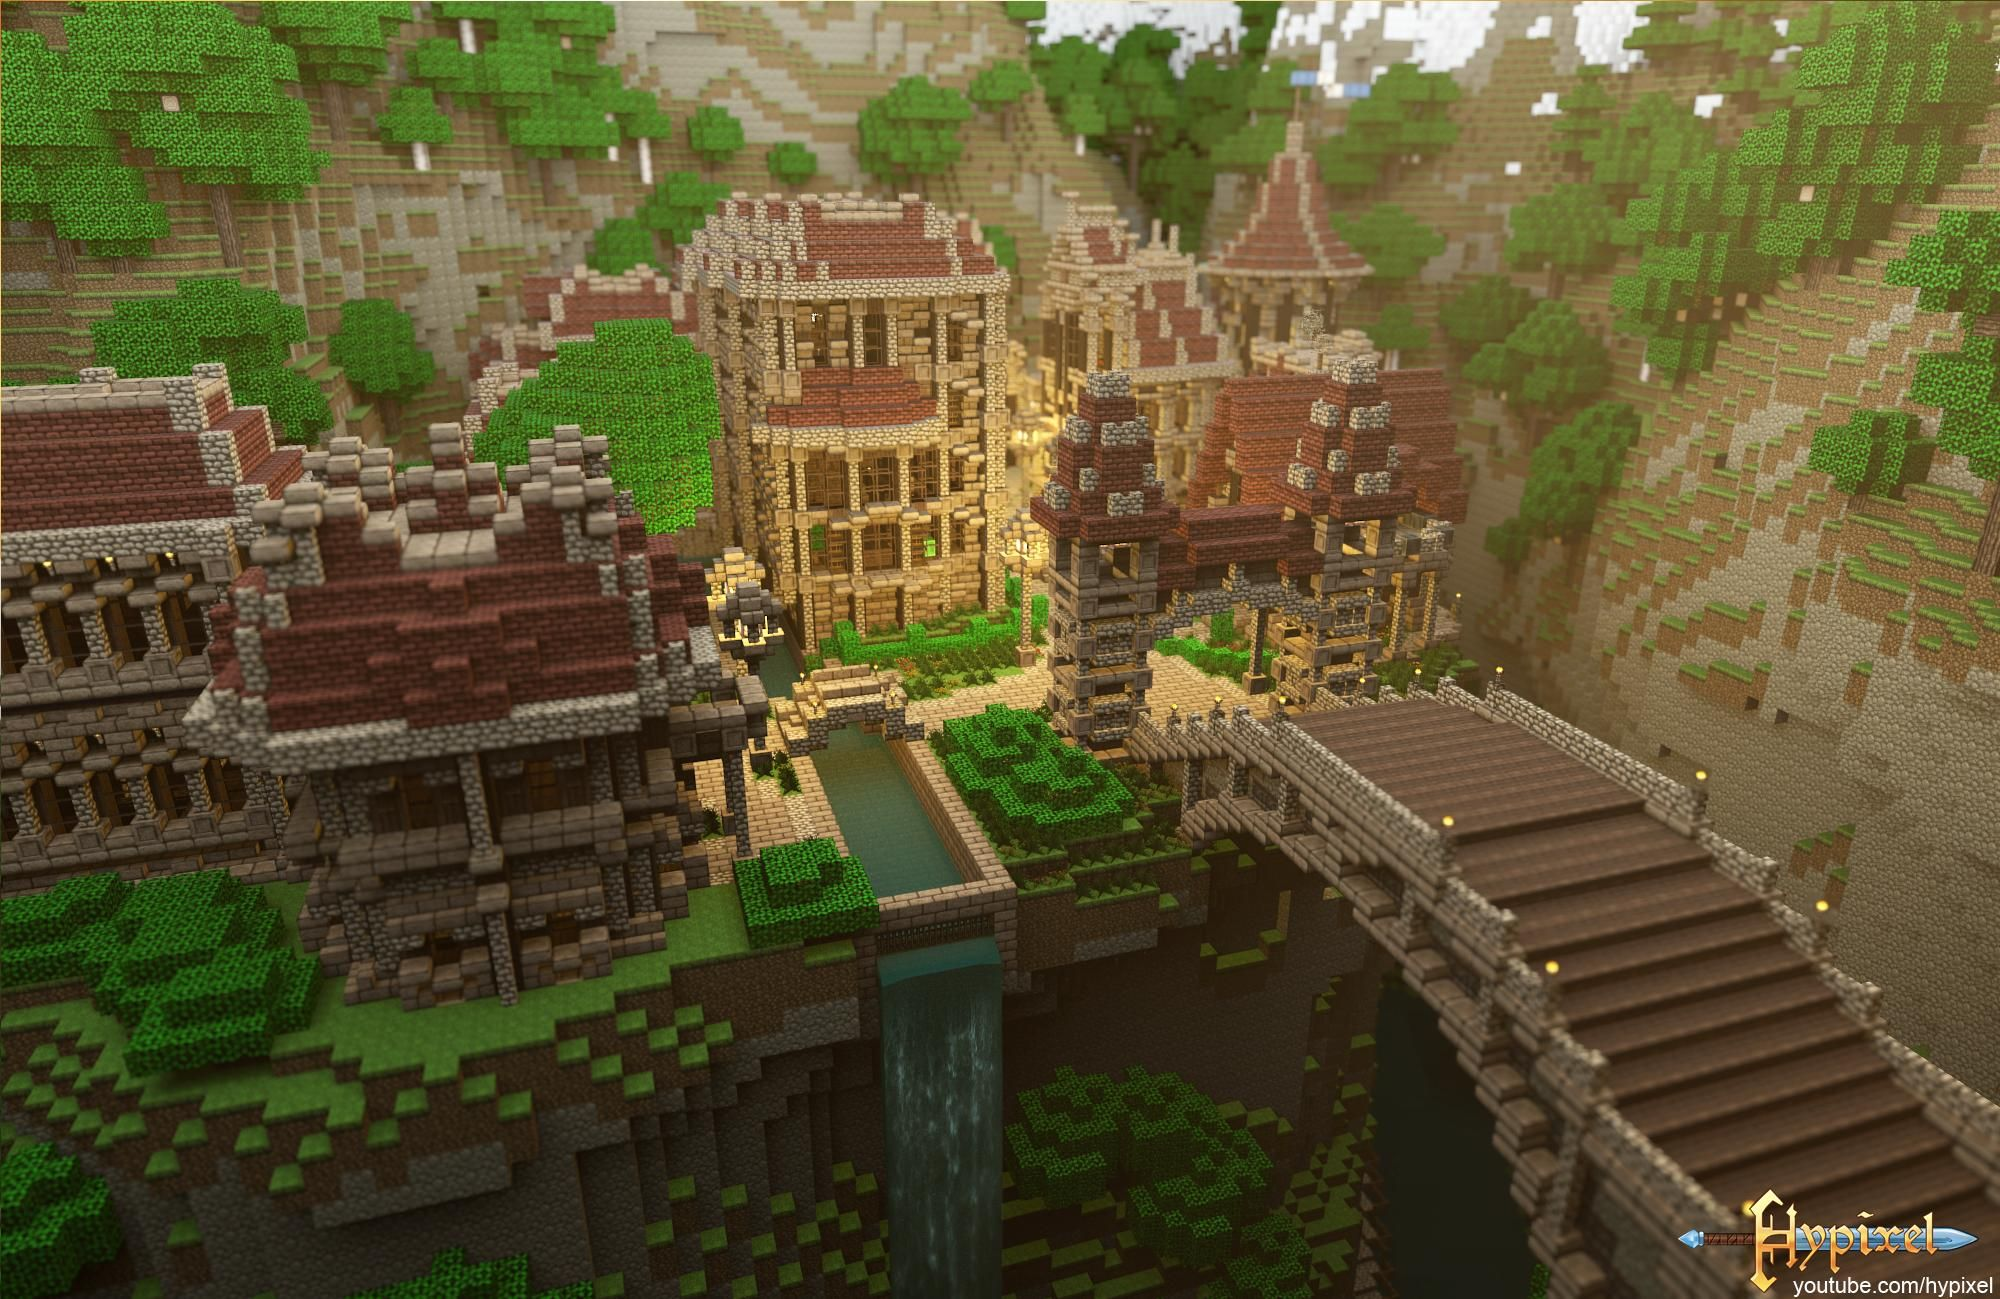 the most awesome images on the internet | minecraft castle, bridge